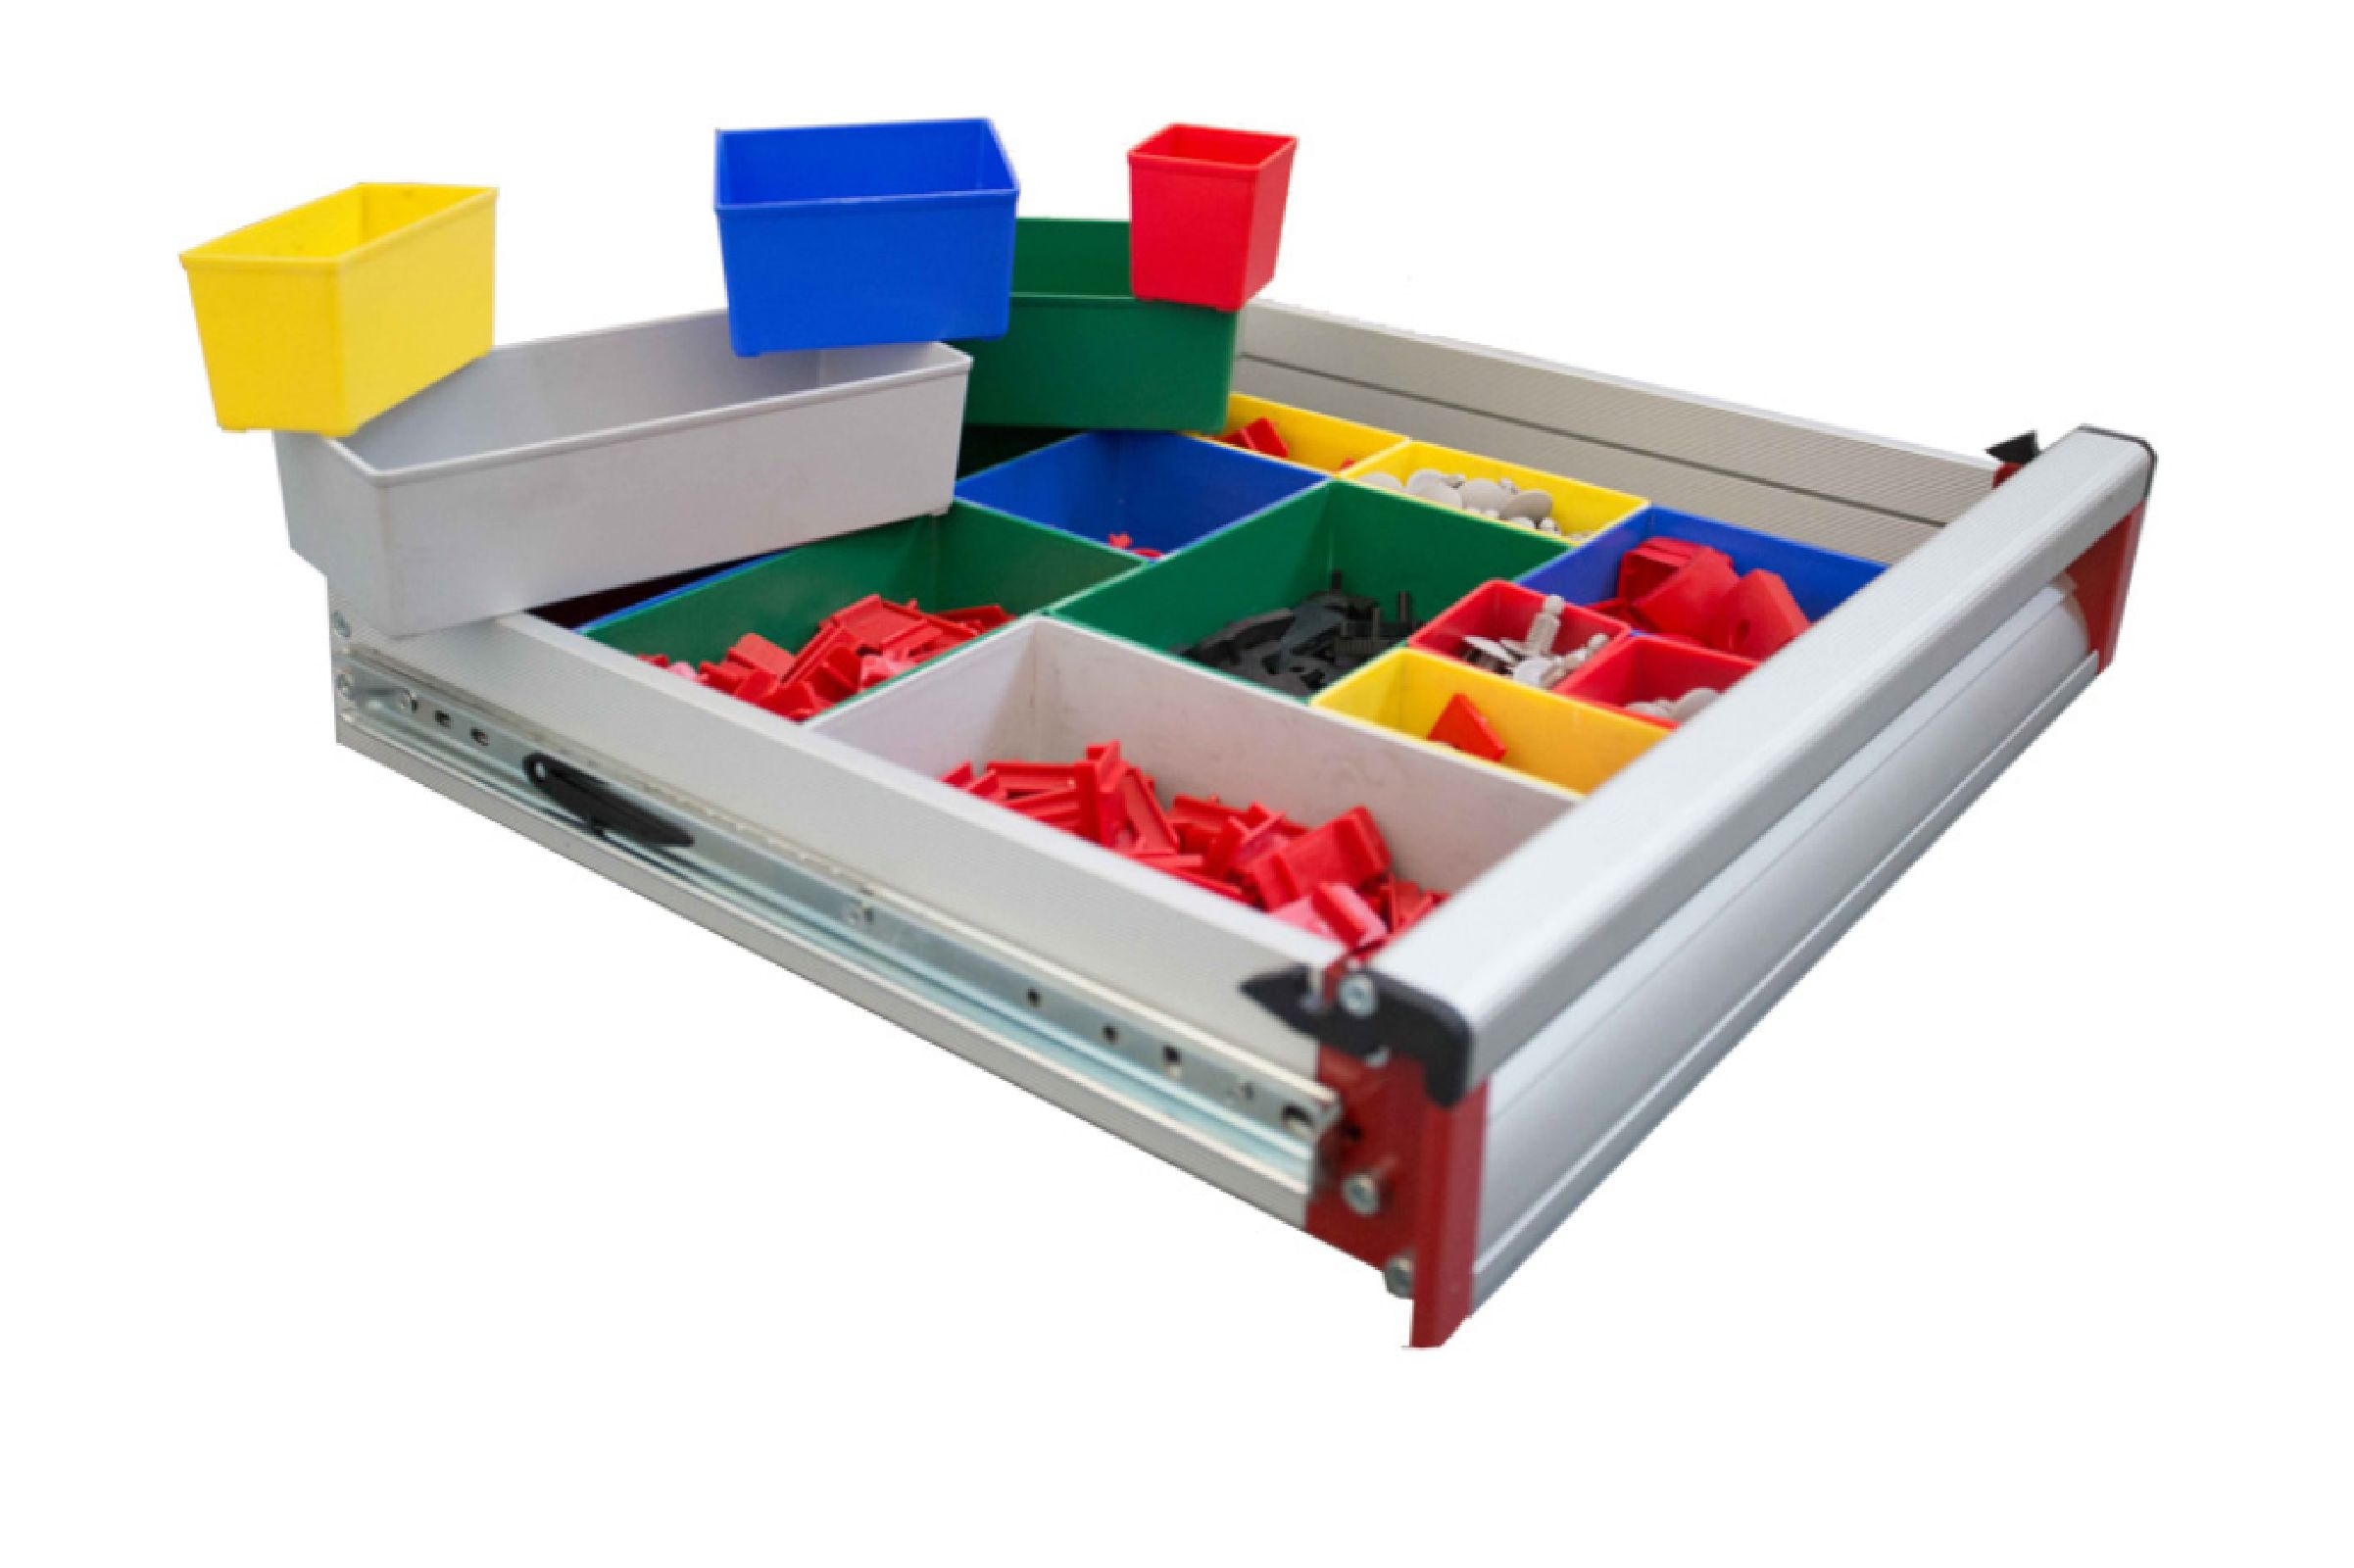 Drawer with containers